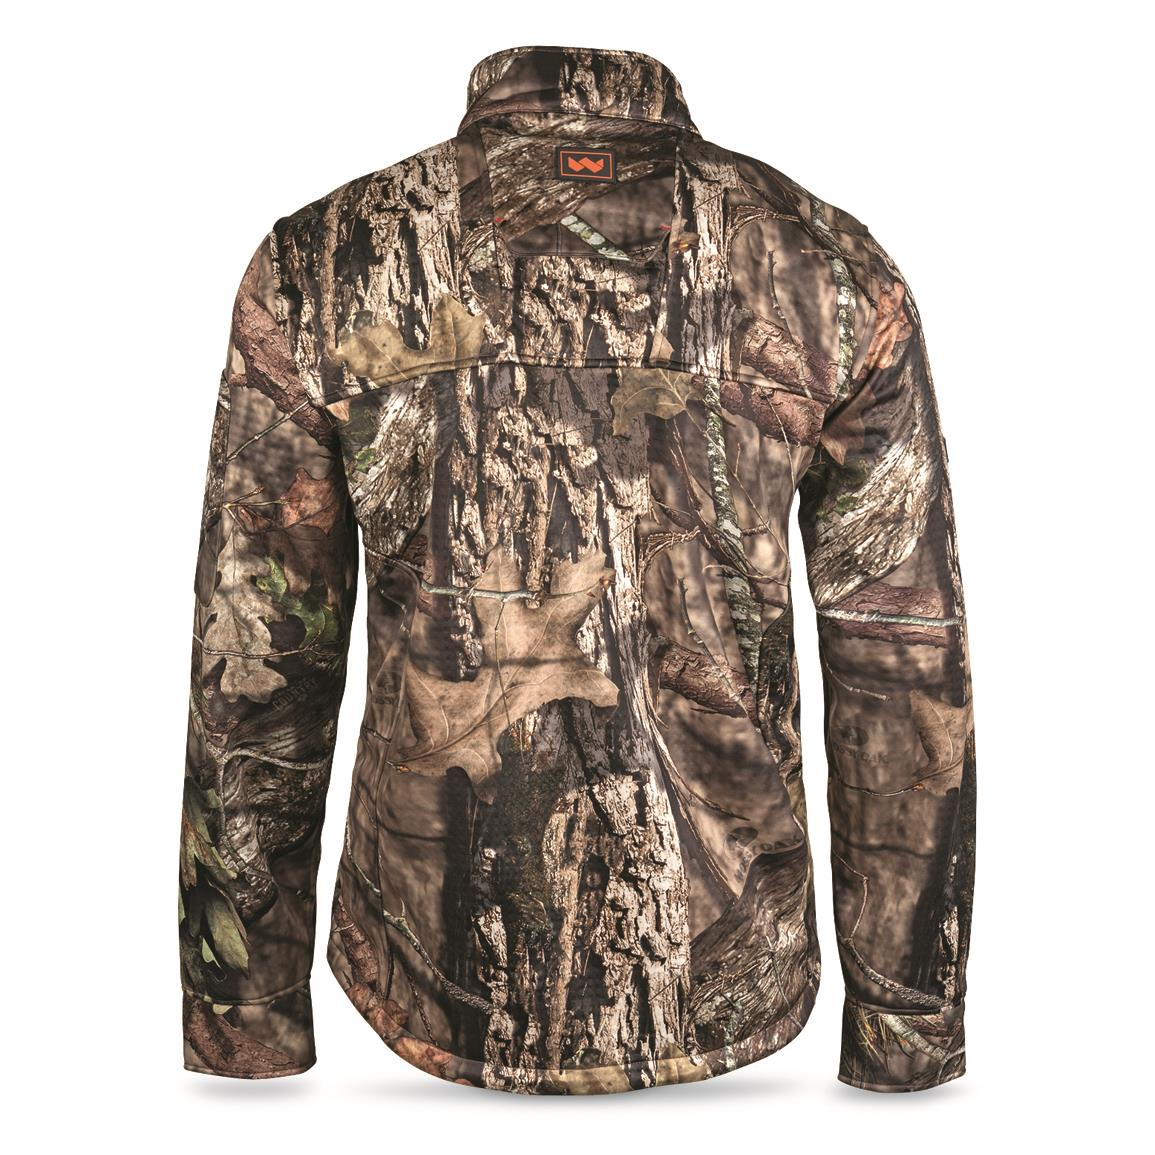 Walls Pro Series Scentrex Lock Down Hunting Jacket, Mossy Oak Break-Up Country